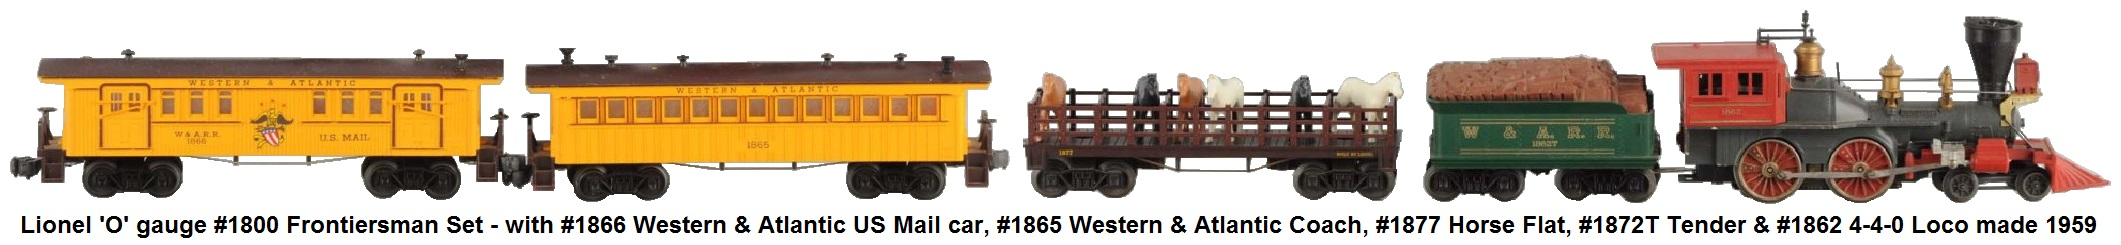 Lionel 'O' gauge #1800 Frontiersman Set with #1862 4-4-0 General steam loco, #1862T Western & Atlantic RR tender, #1865 Coach and #1866 US Mail Car from 1959